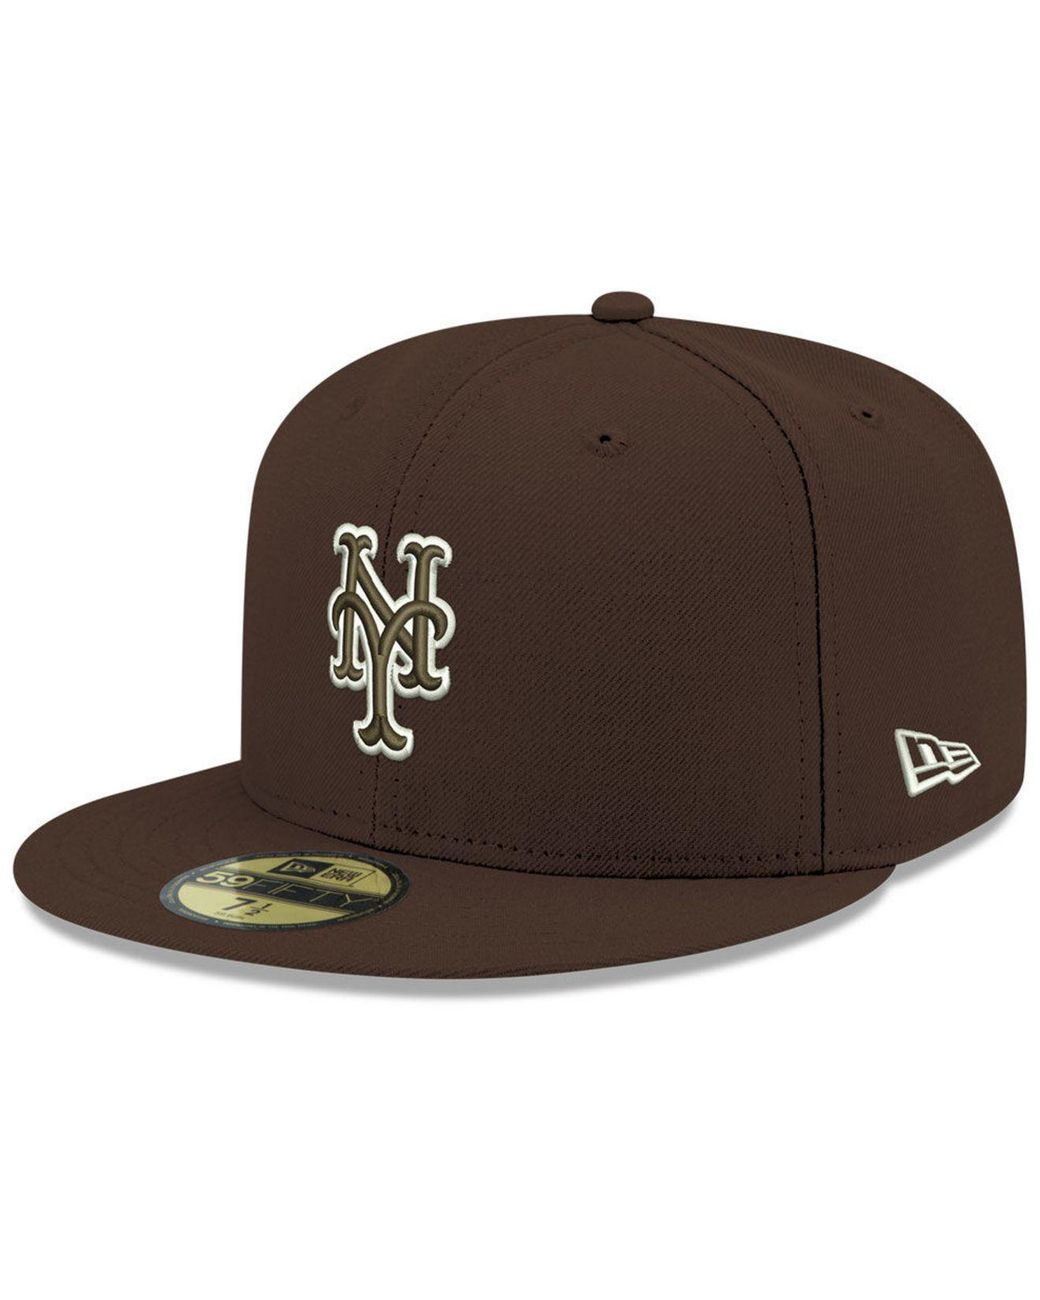 half off 448b3 6d5fa KTZ New York Mets Re-dub 59fifty Fitted Cap in Brown for Men - Lyst